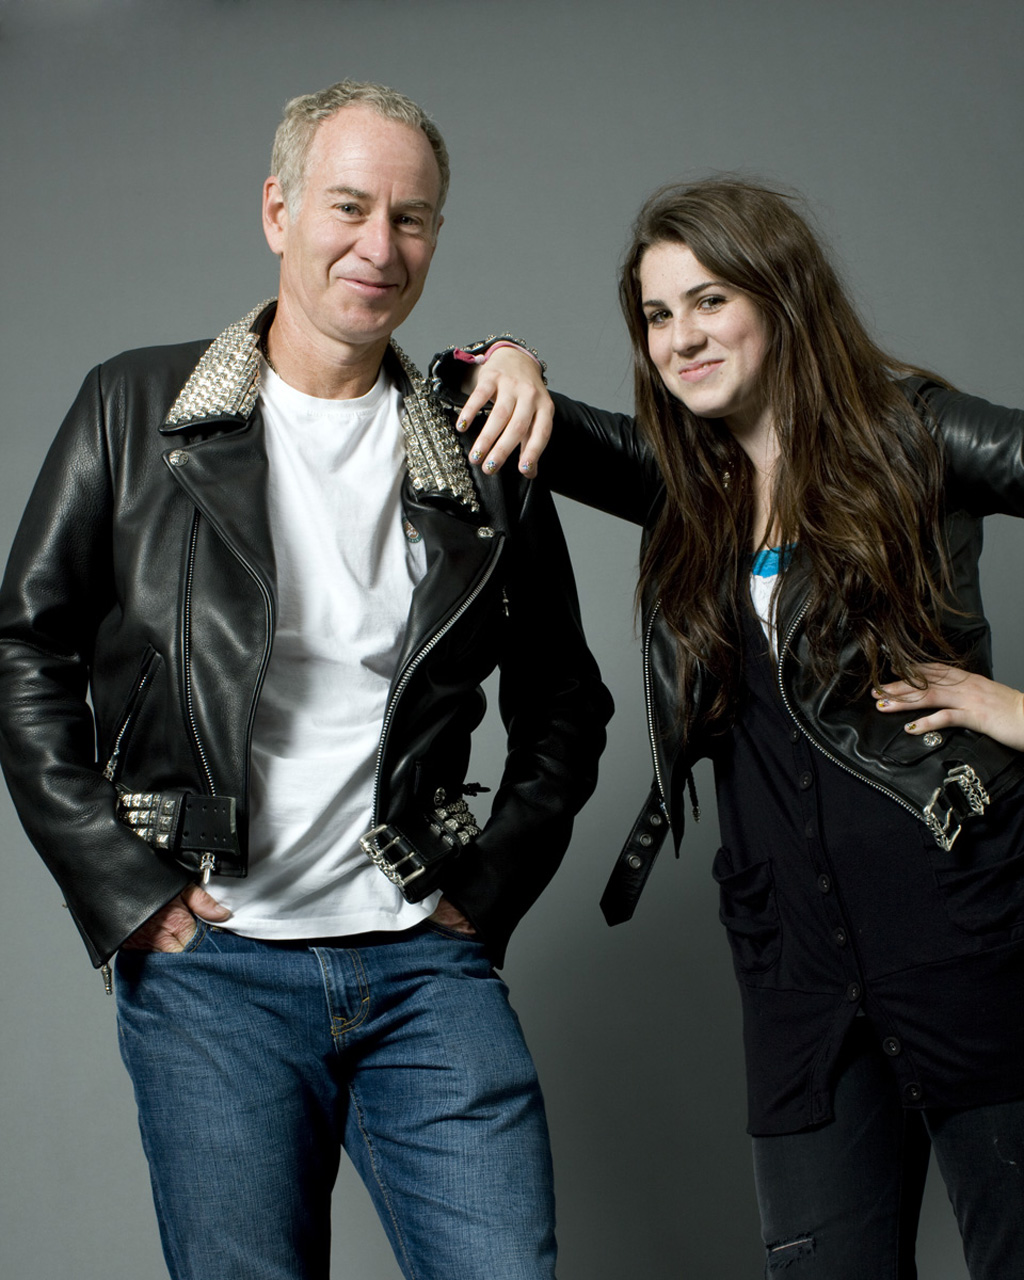 McEnroe Family John McEnroe Emily McEnroe Professional Athlete Tennis Legend Daughter